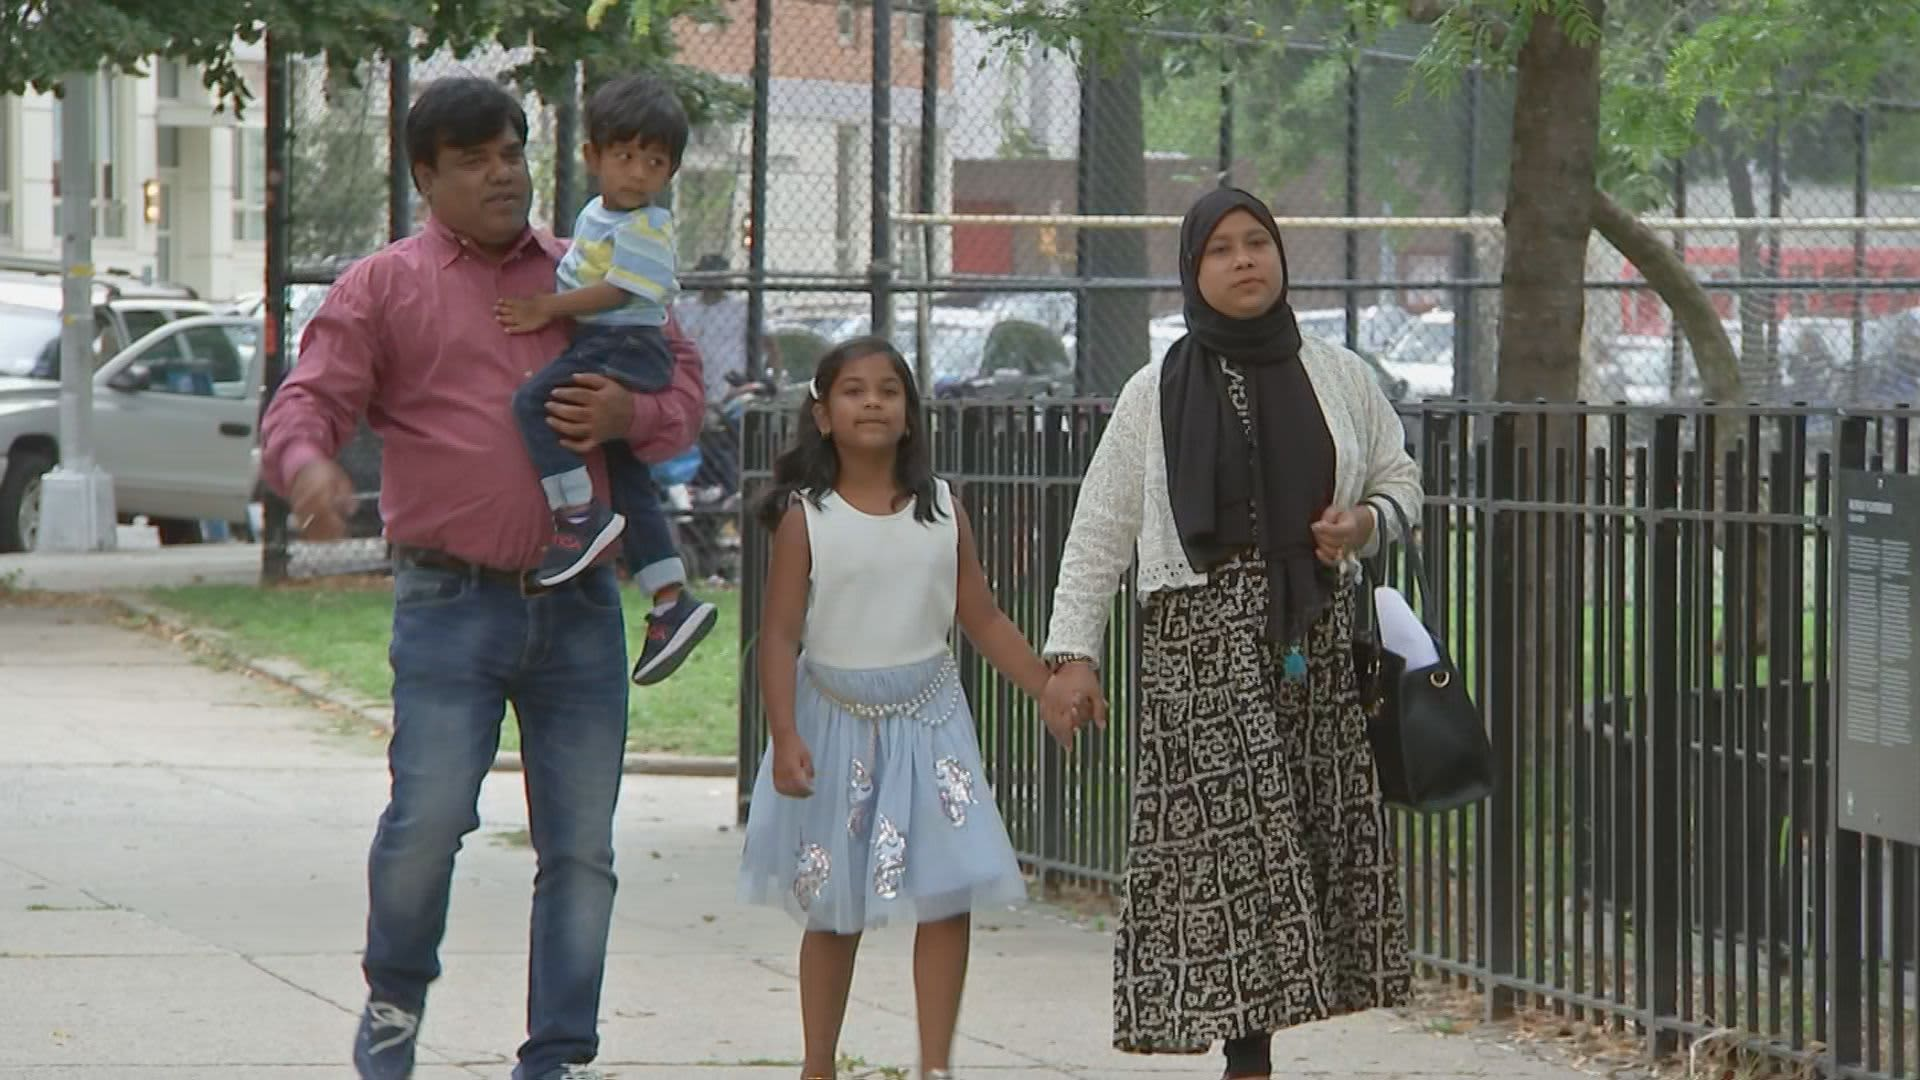 Rukiya Zaman, 7, received a $100 in a scholarship 529 college savings plan as part of a New York City pilot program aimed at closing the wealth gap. Her parents have since started saving in their own account.